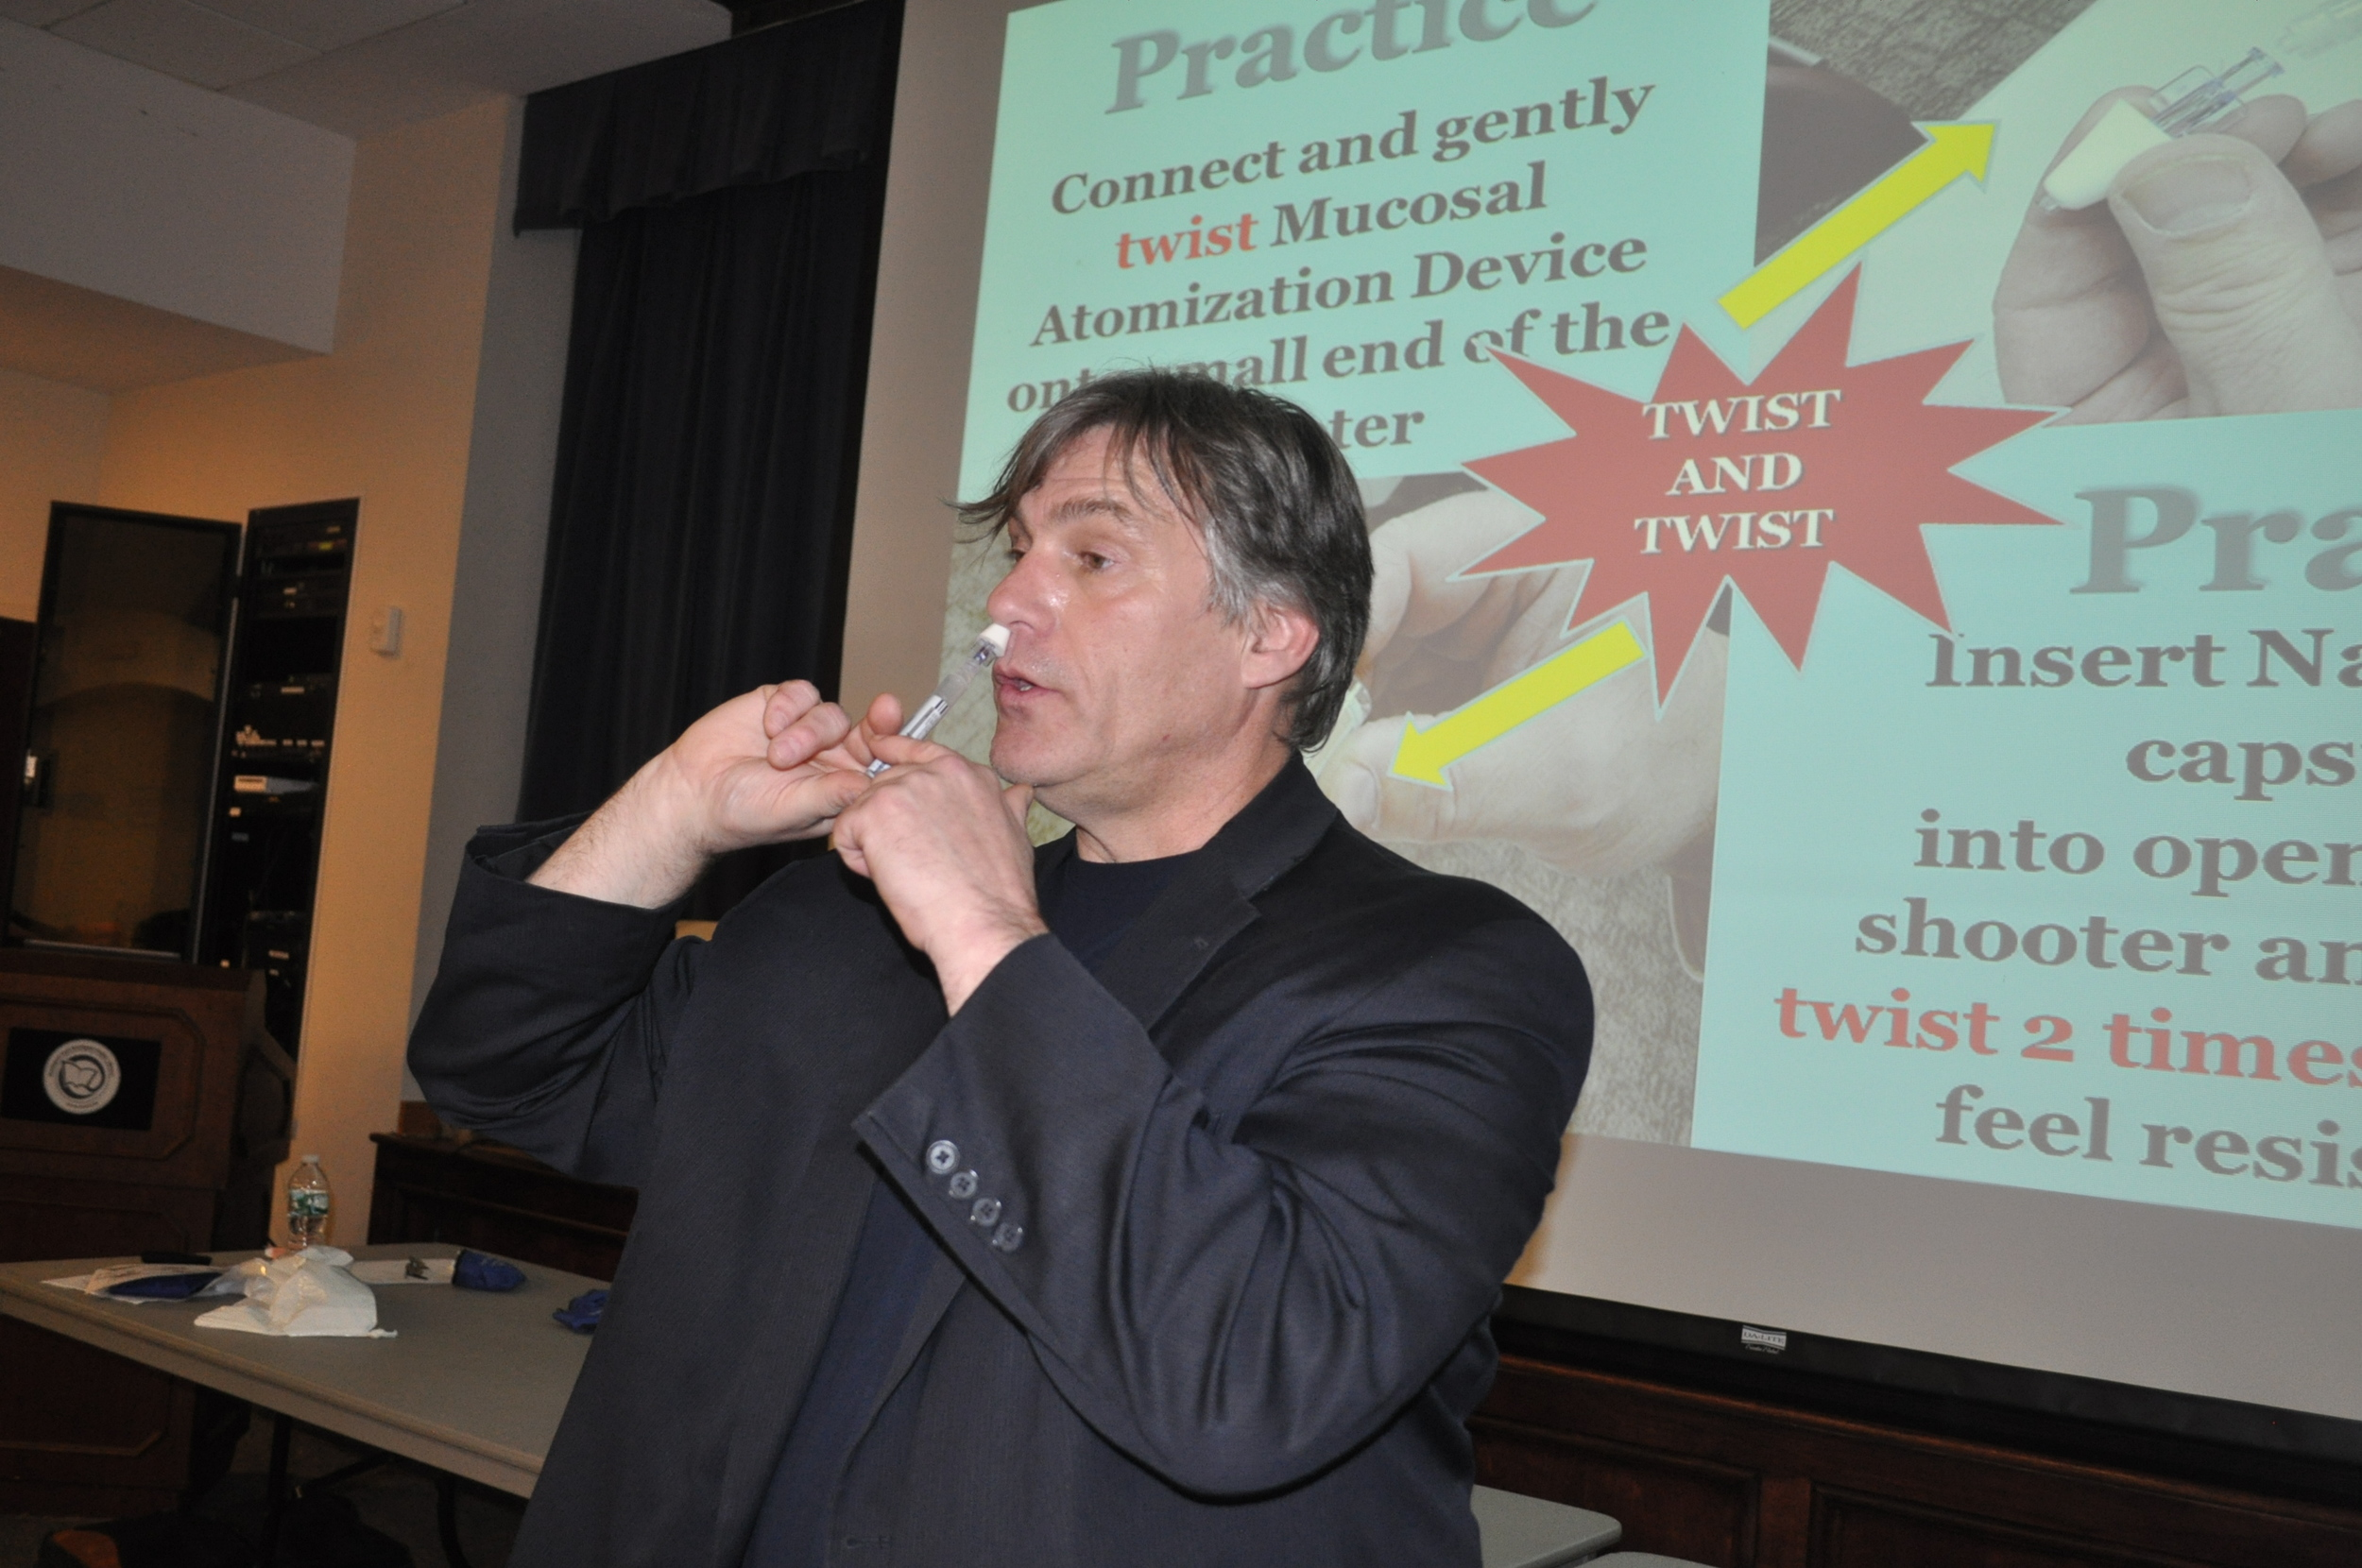 John T. Martin, a senior public health educator for Suffolk County, demonstrates the nasal administration of the drug overdose antidote Narcan.